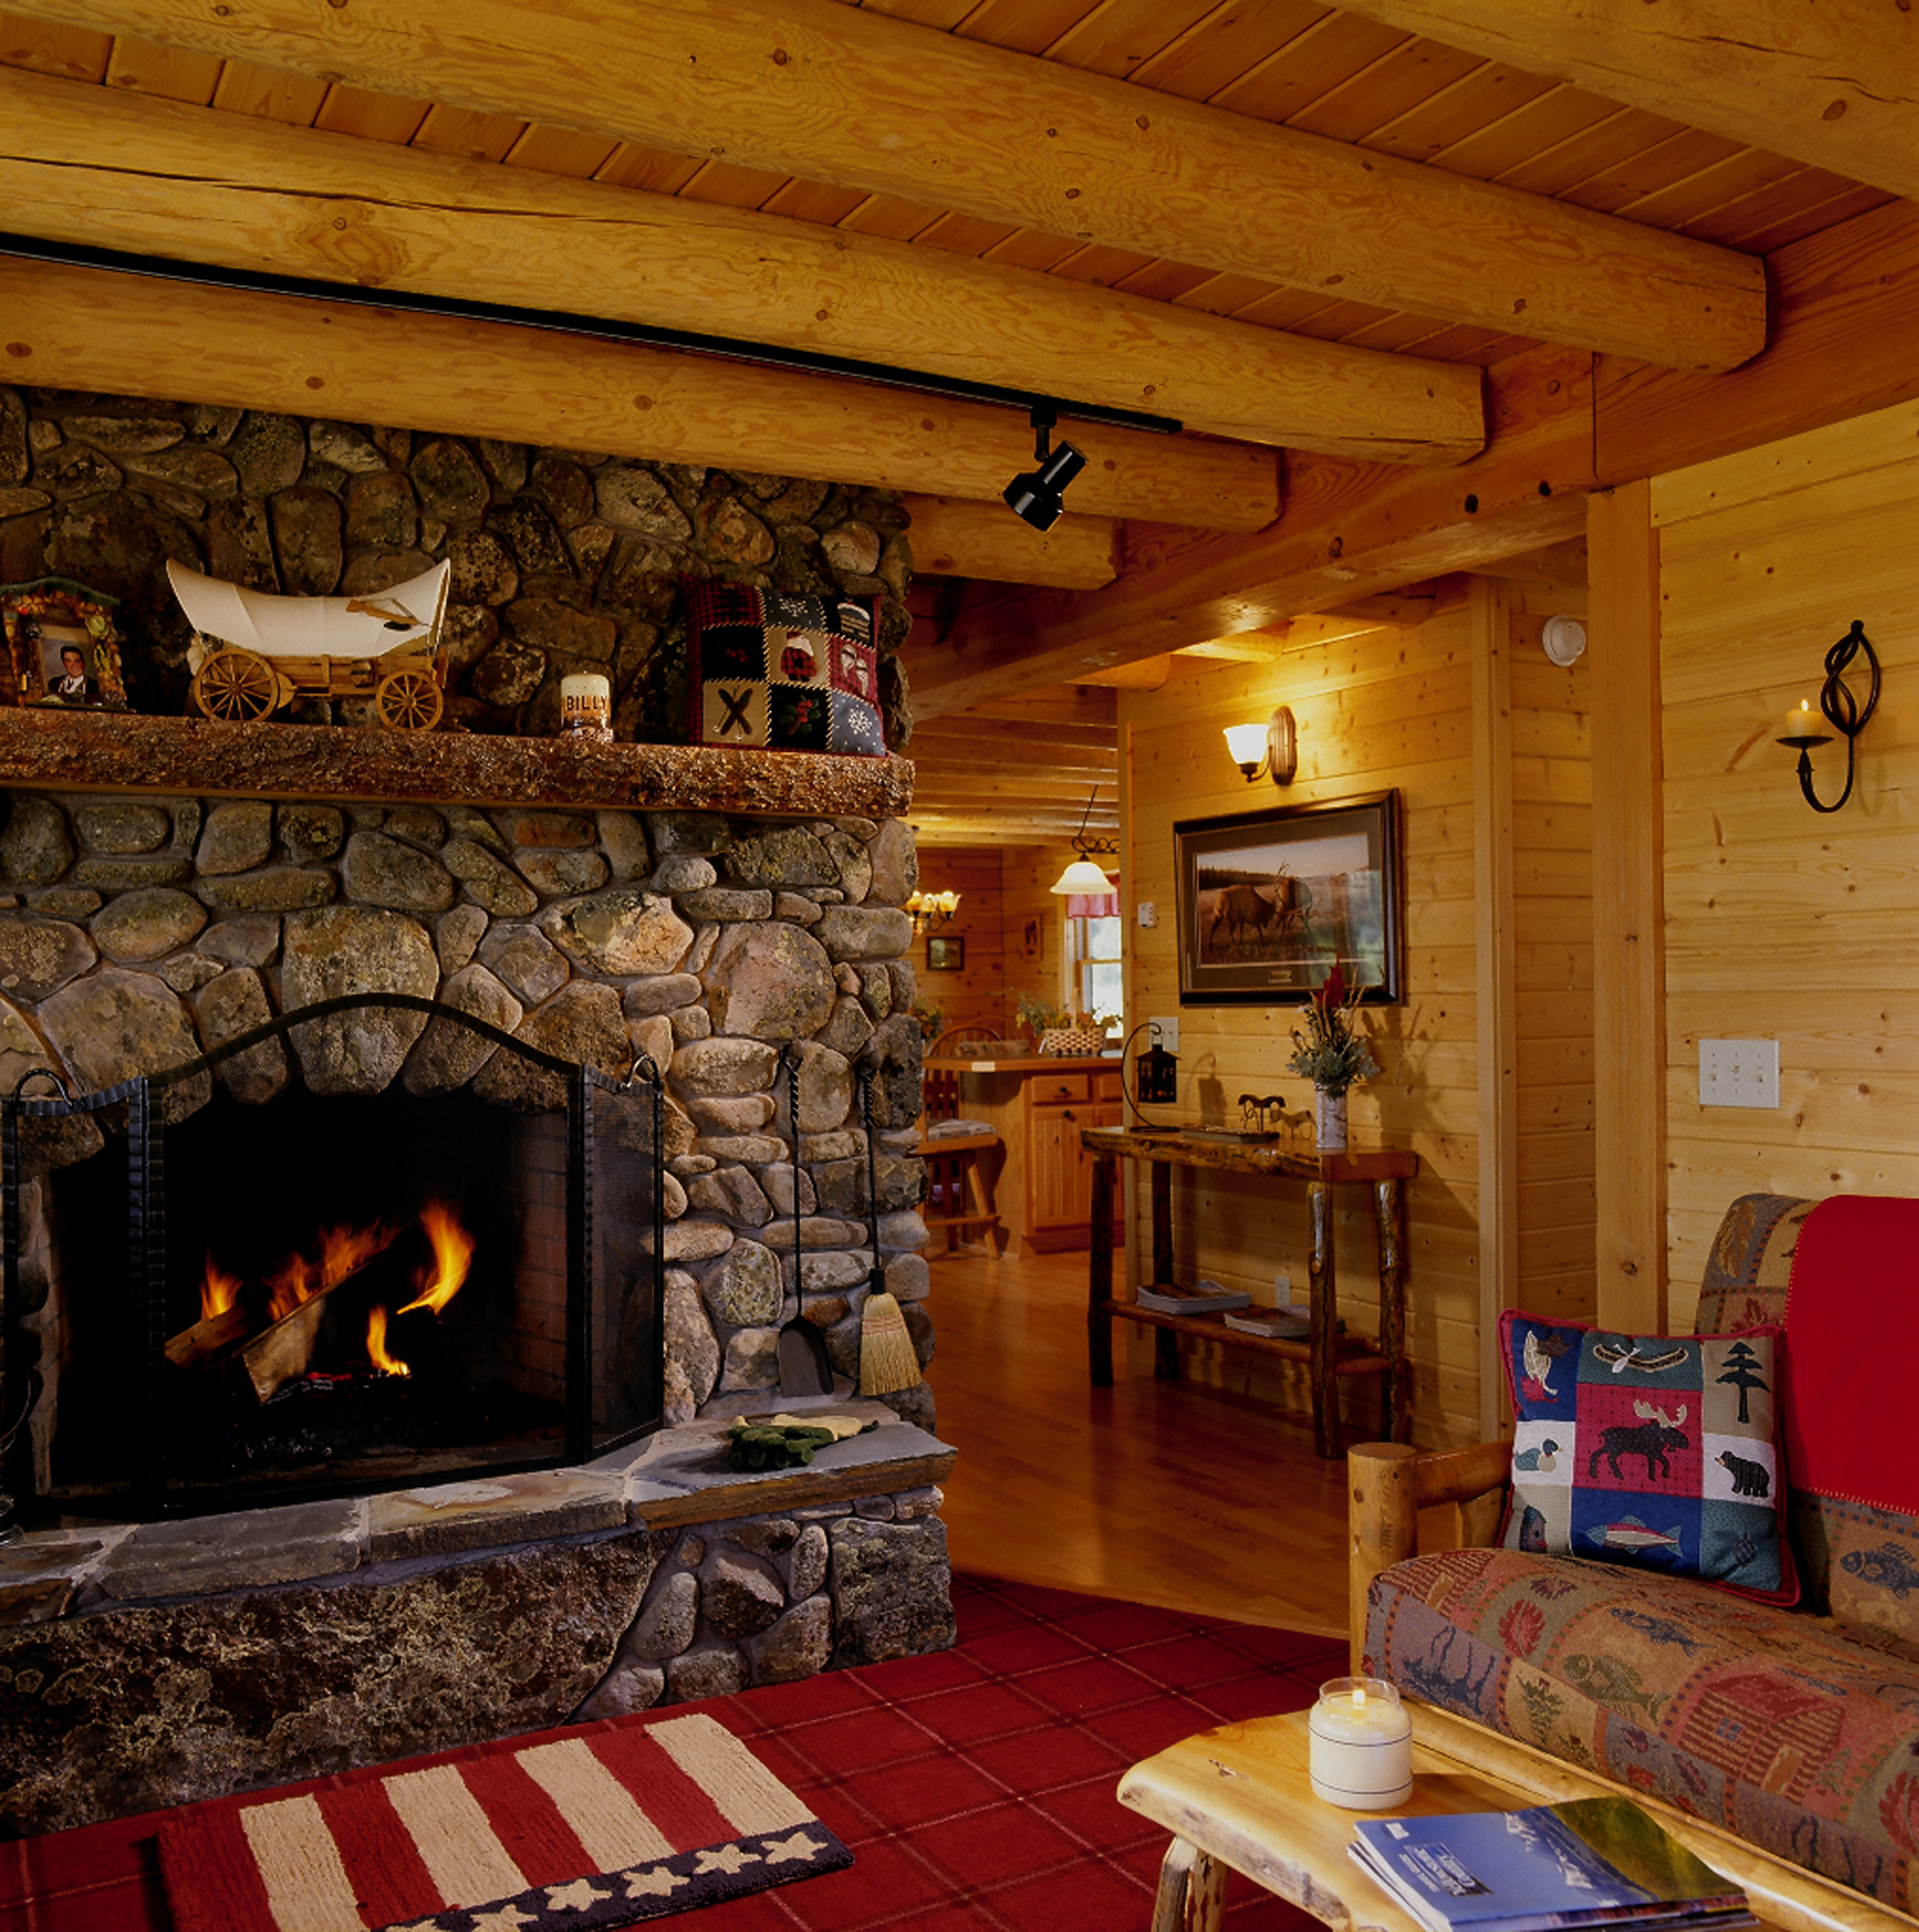 Dining Room Fireplace Ideas For Romantic Winter Nights: Celebrate The Romance Of A Log Home Or Cabin This Winter